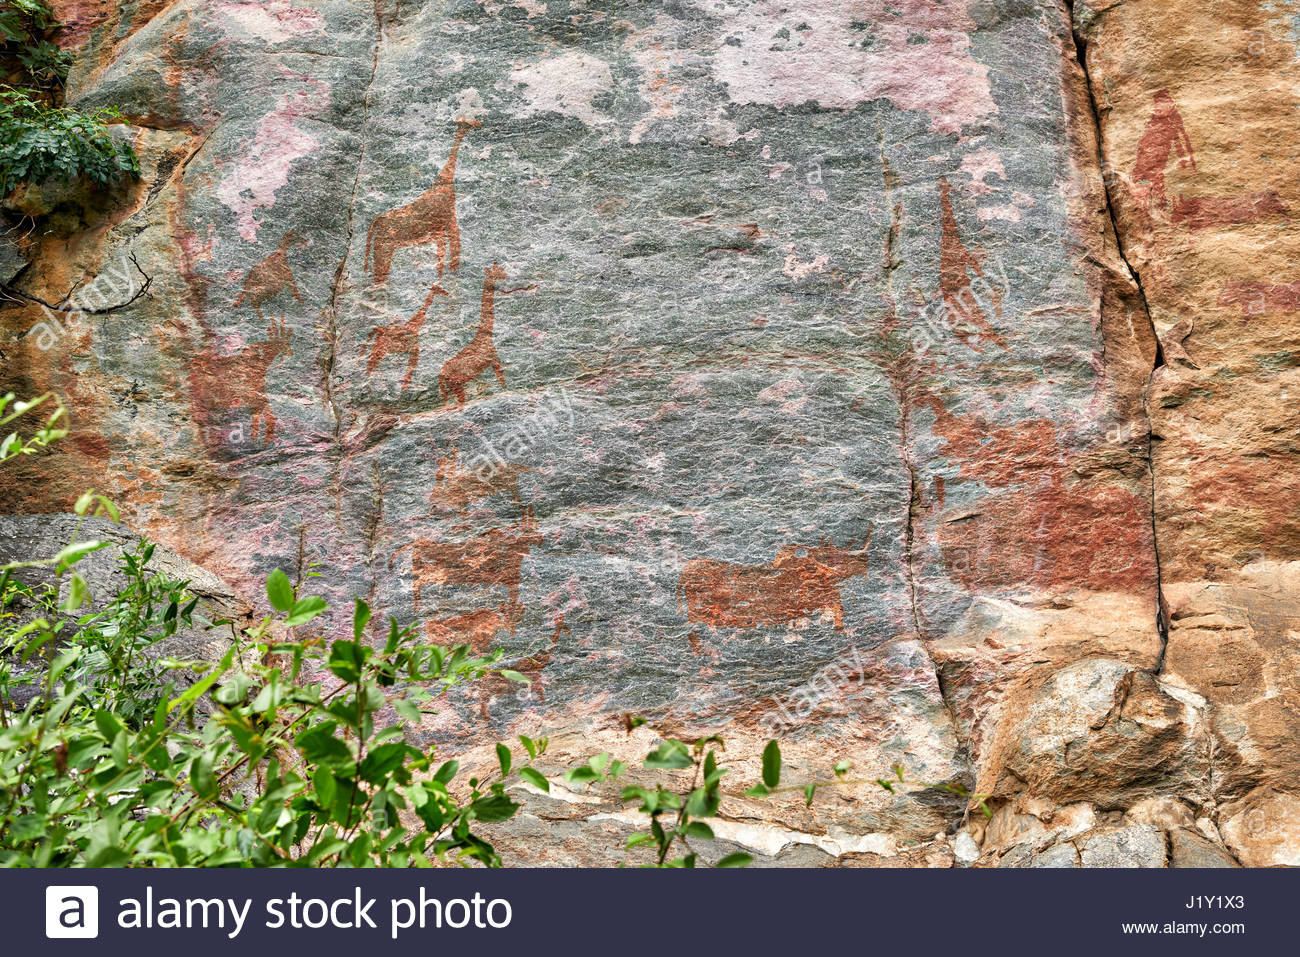 Lion Painting Tsodilo Hills, Ancient Pictograms Stock Photos & Ancient Pictograms Stock Images ...